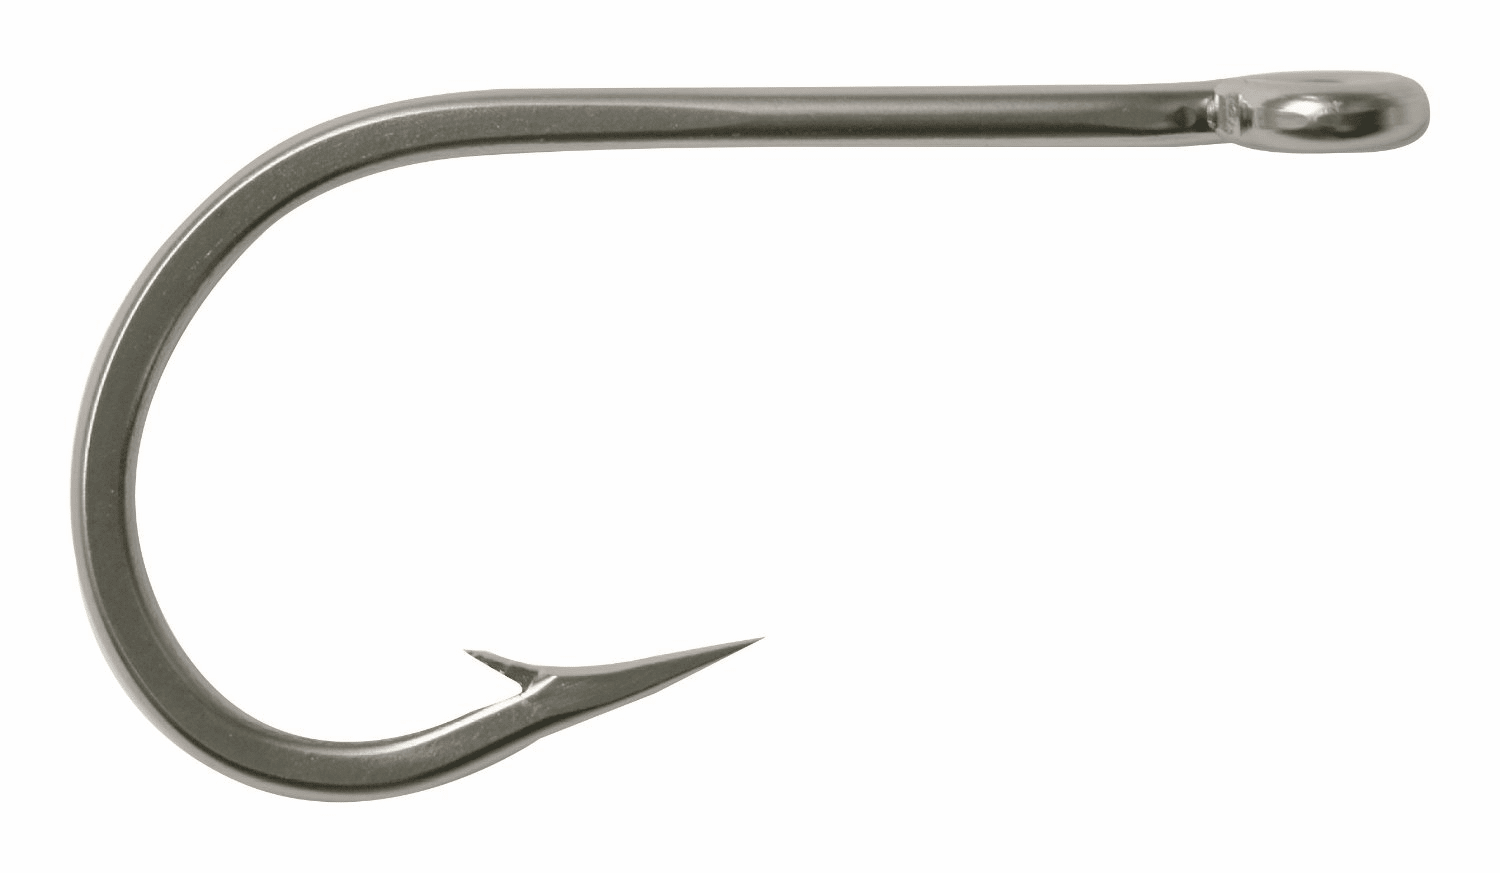 Stainless Steel Trolling Tuna Hooks- Model 7691S - 12/0 - 15 pcs